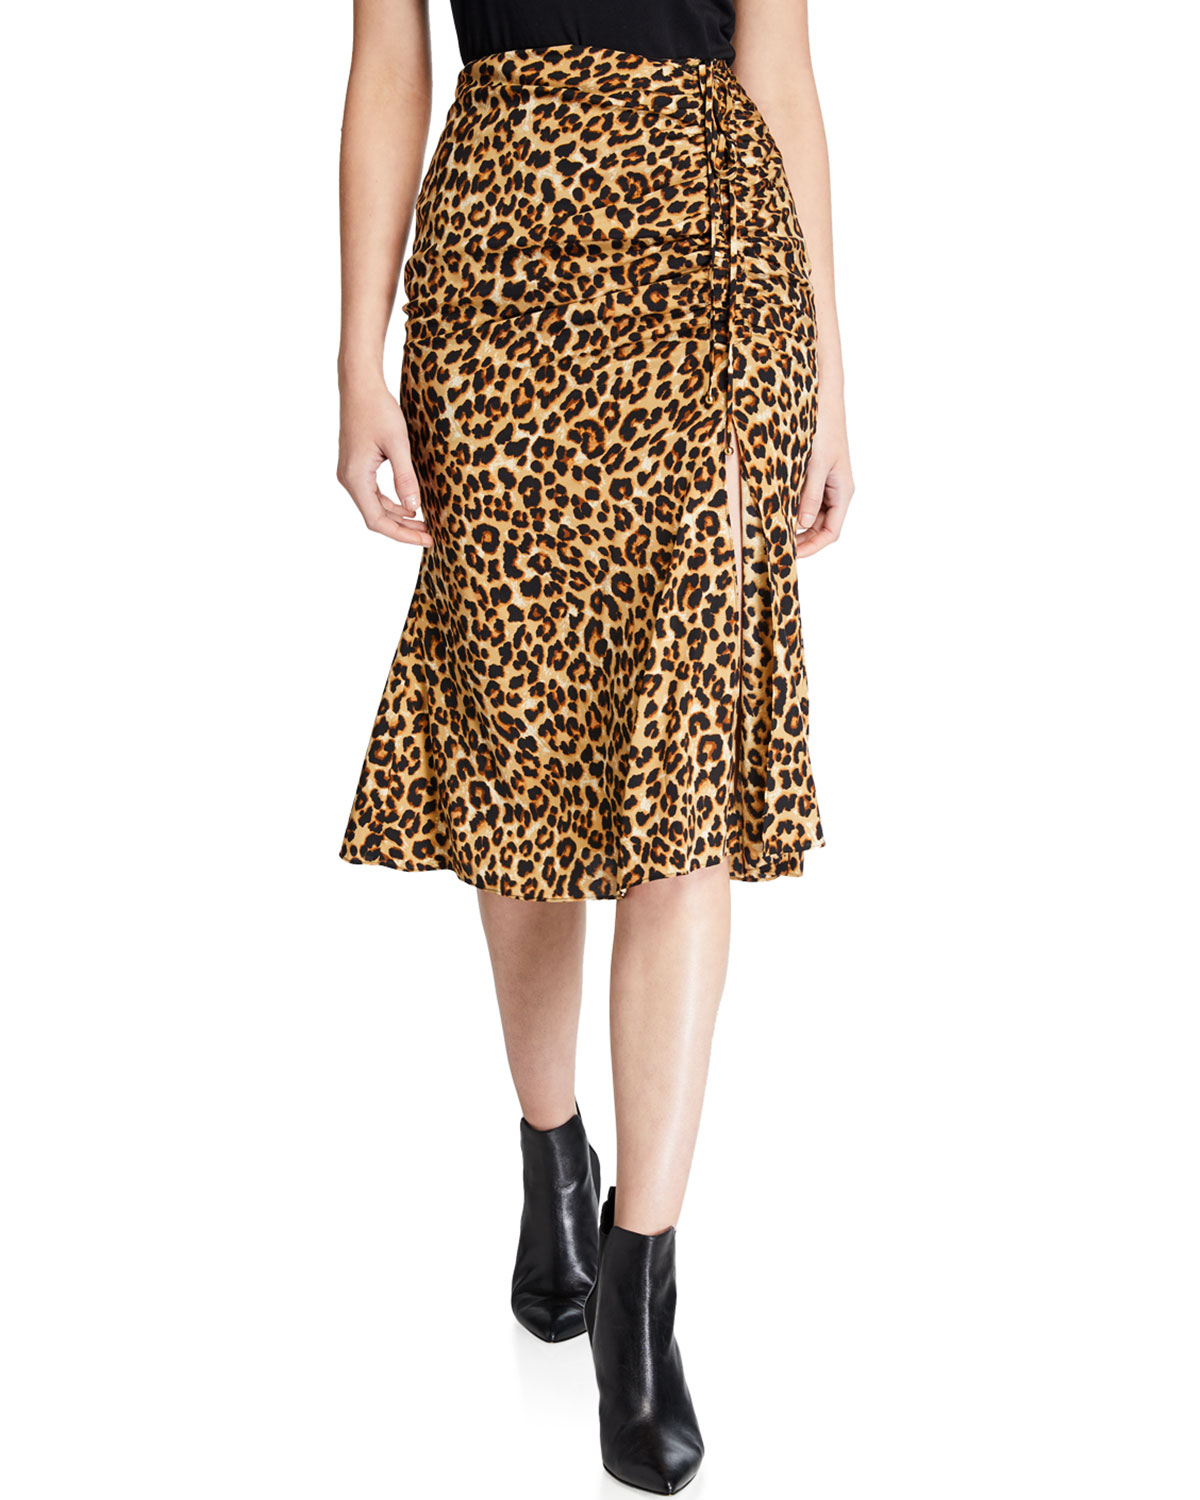 Veronica Beard Skirts VANITY LEOPARD SLIT SKIRT